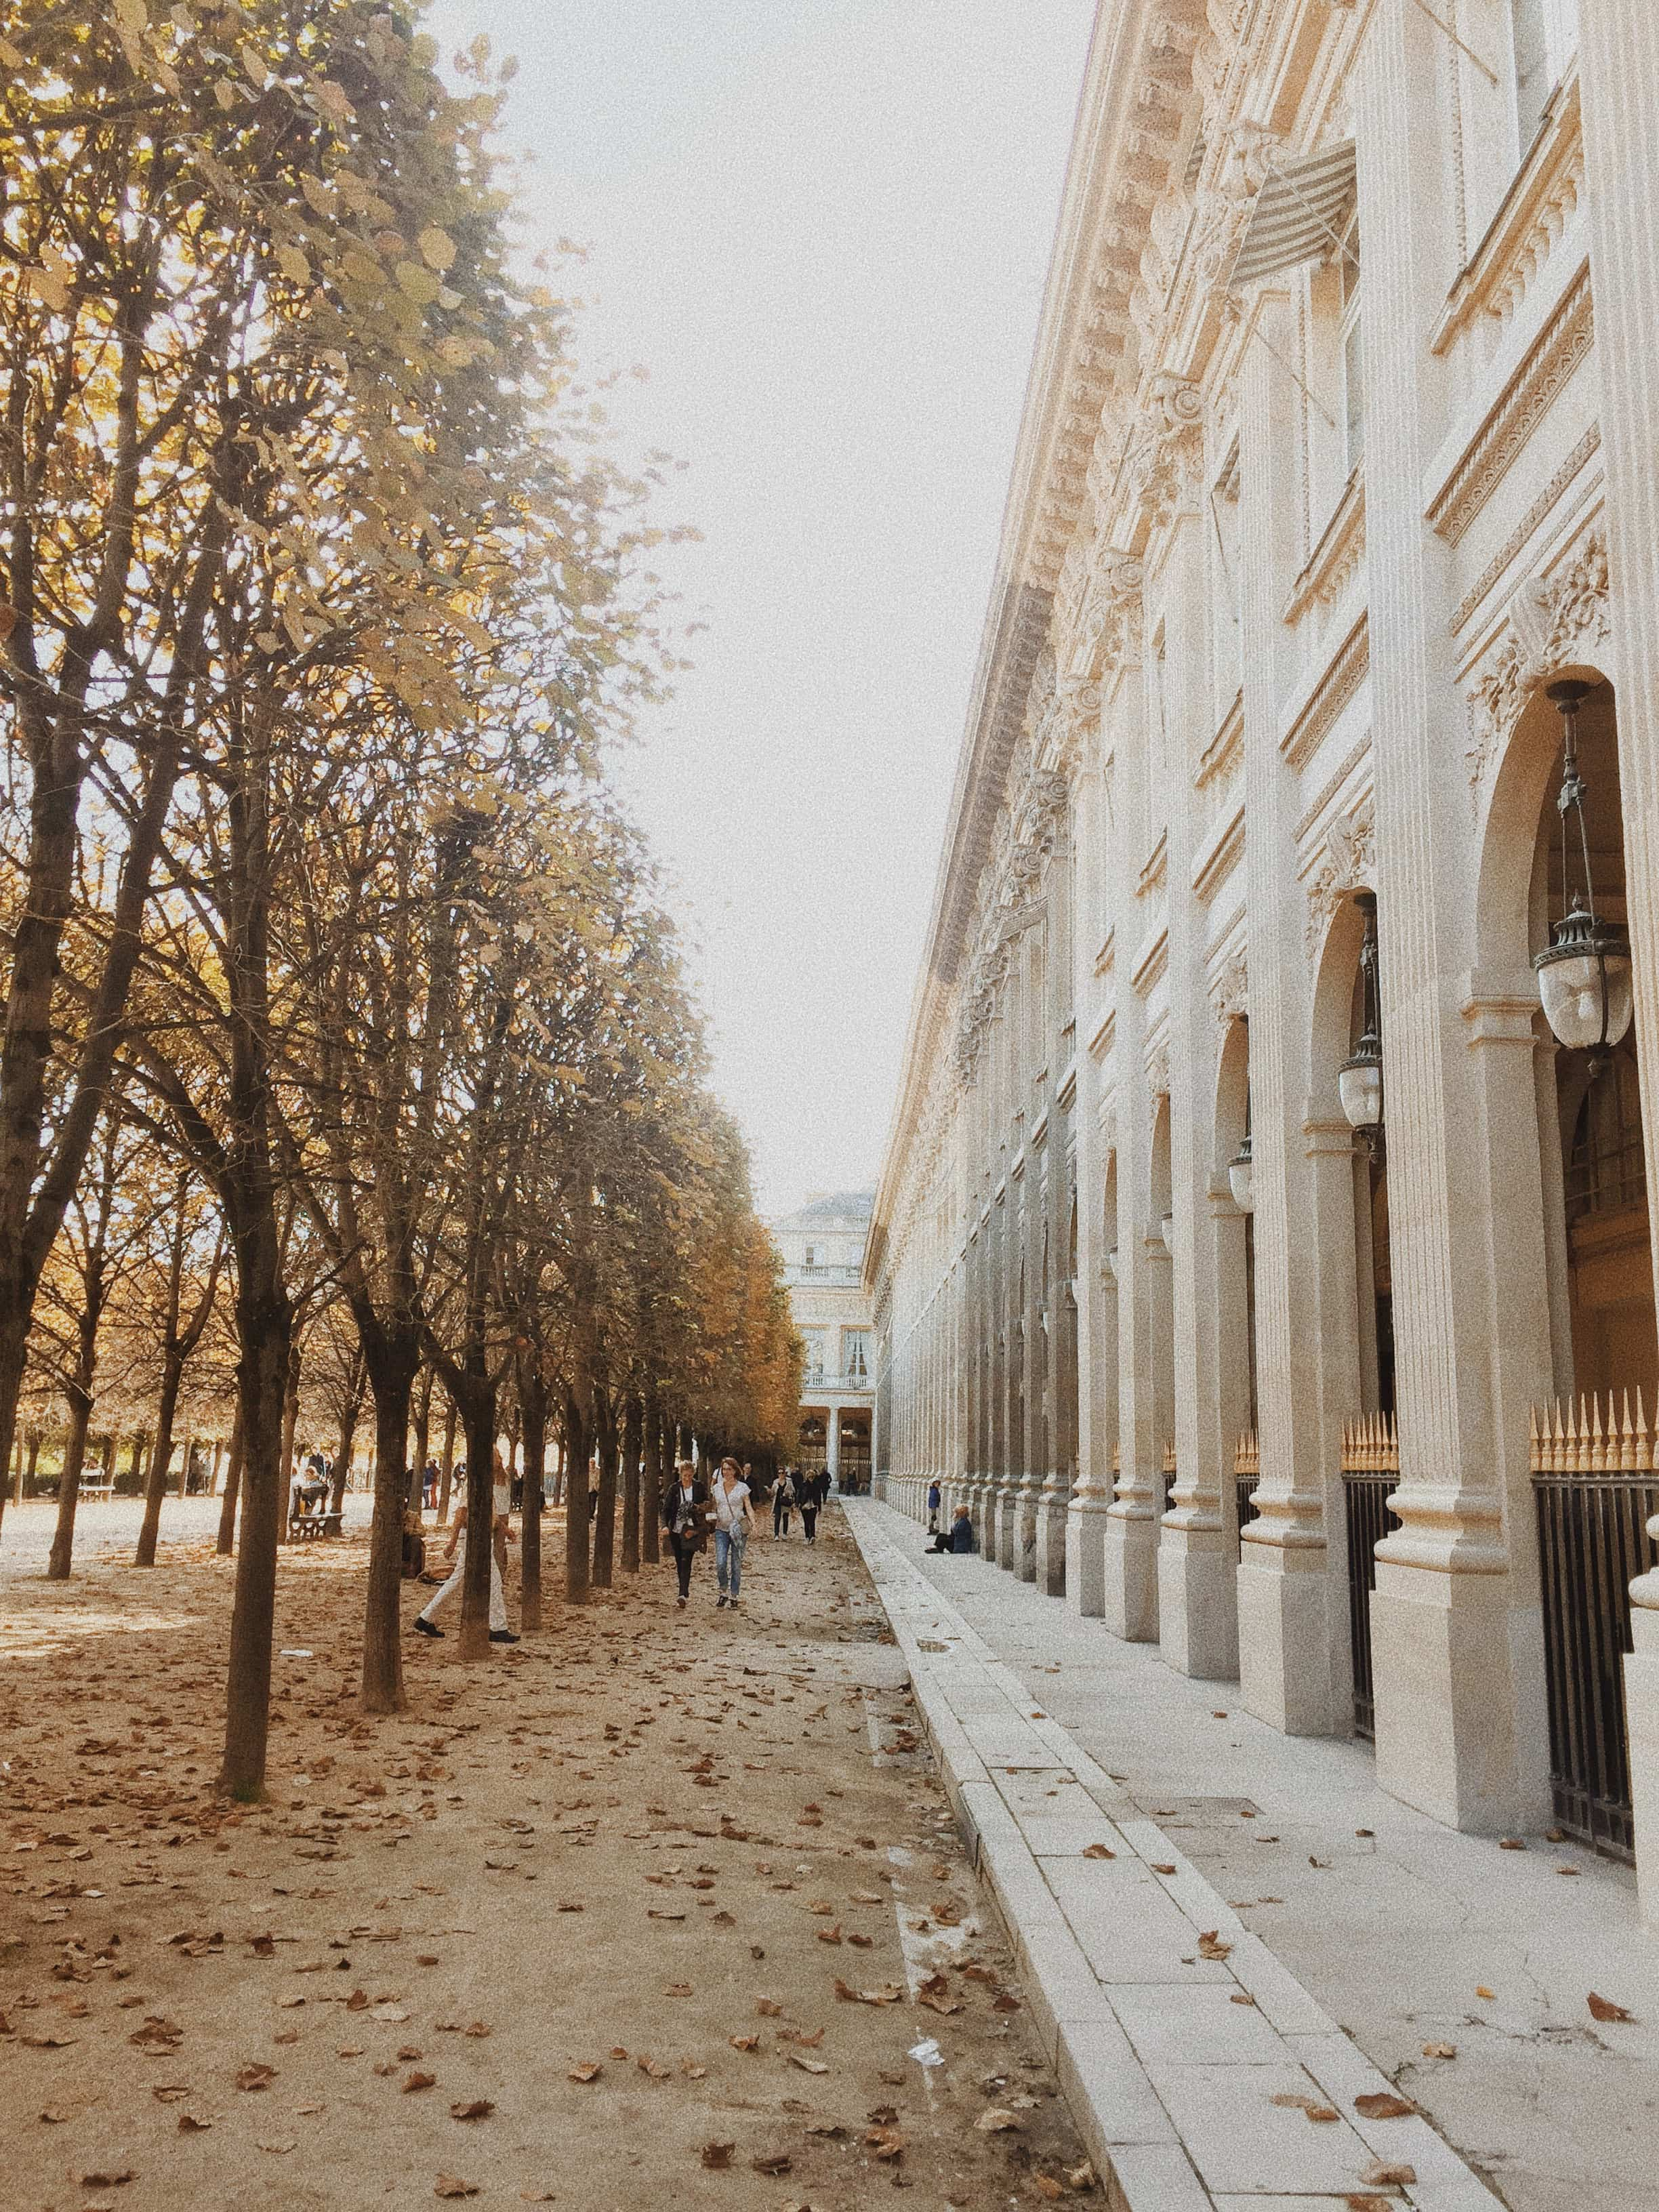 Palais Royal path between trees